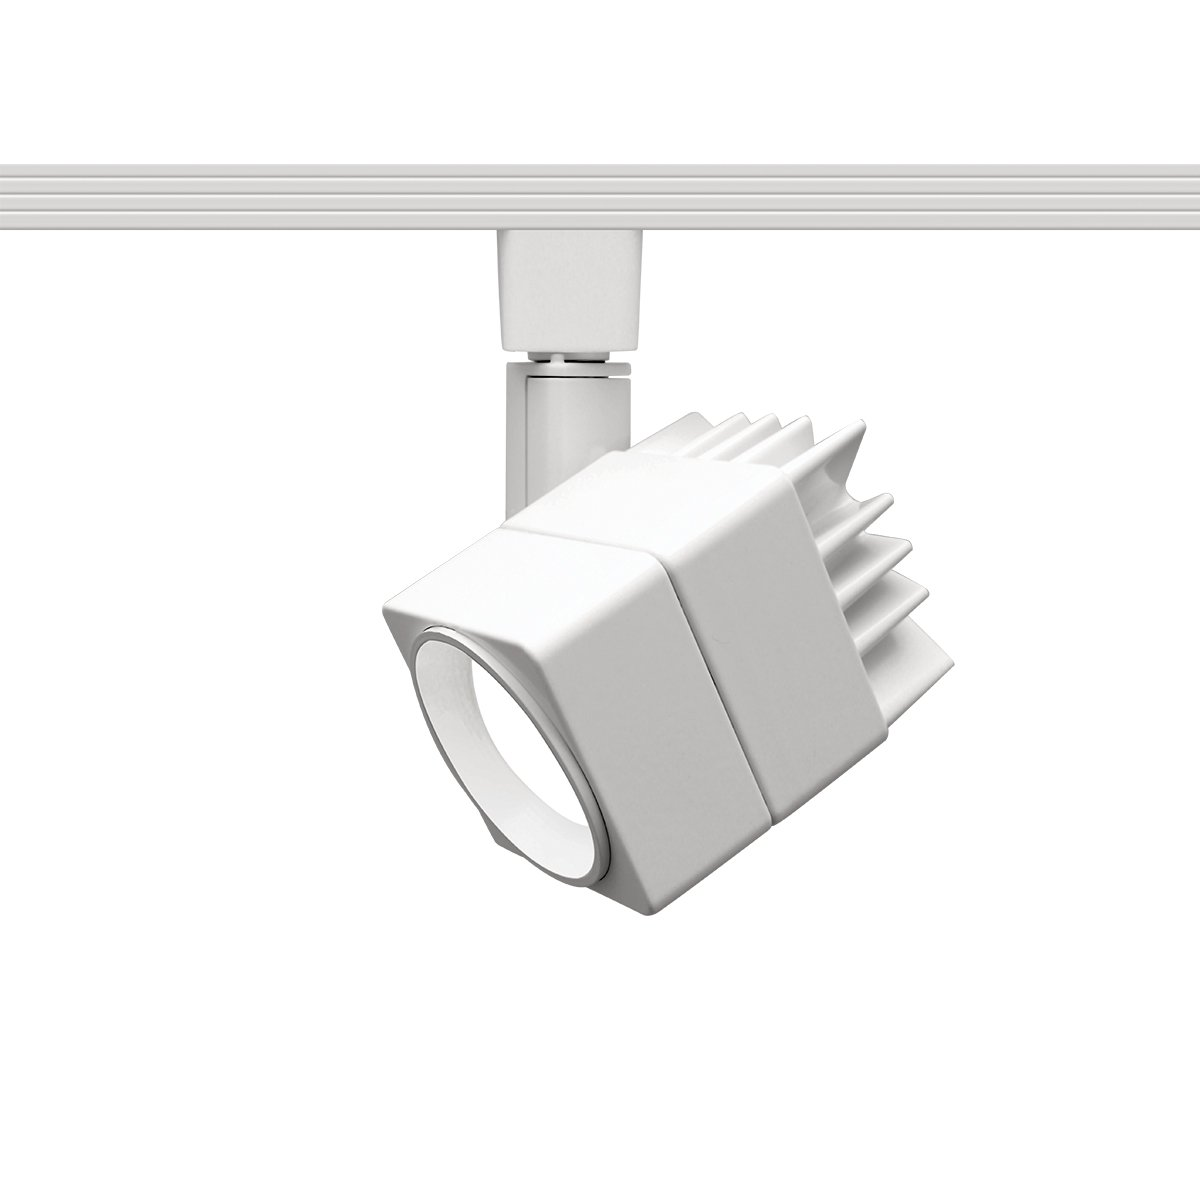 WAC Lighting L-LED207-30-WT Contemporary Summit ACLED 15W Beamshift Line Voltage Cube L-Track Head by WAC Lighting (Image #1)